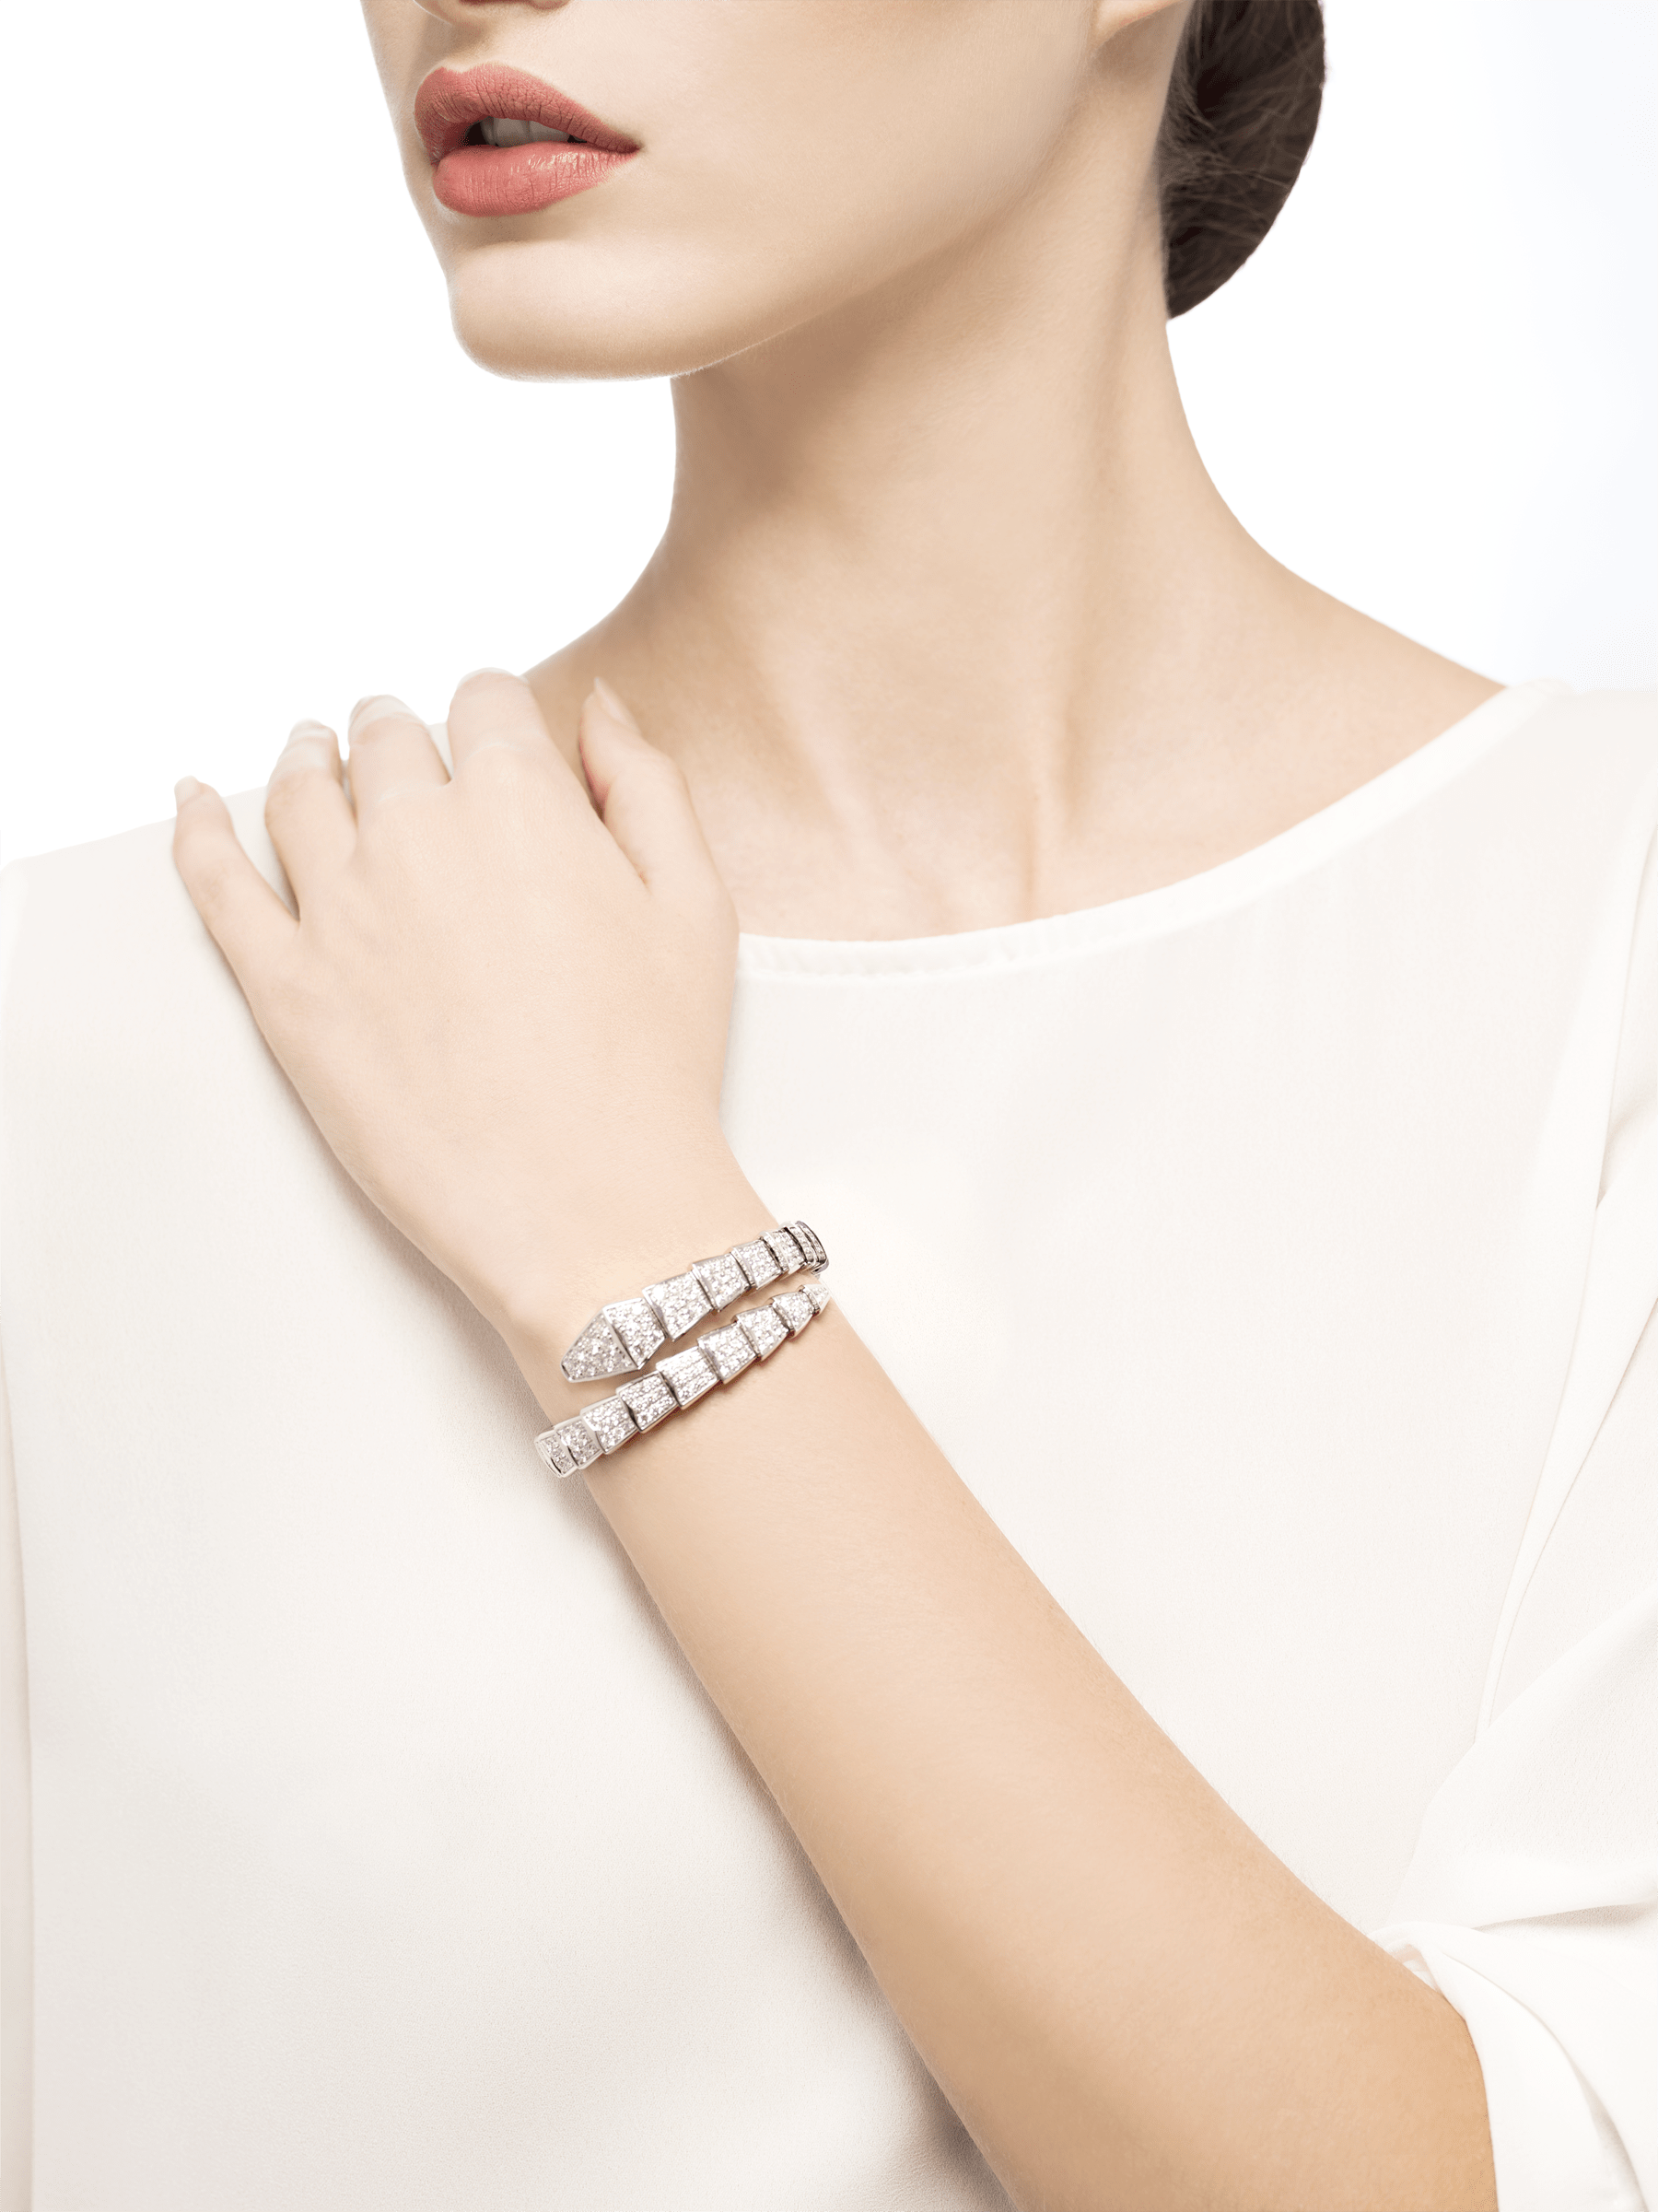 Serpenti one-coil bracelet in 18 kt white gold, set with full pavé diamonds. BR855231 image 4